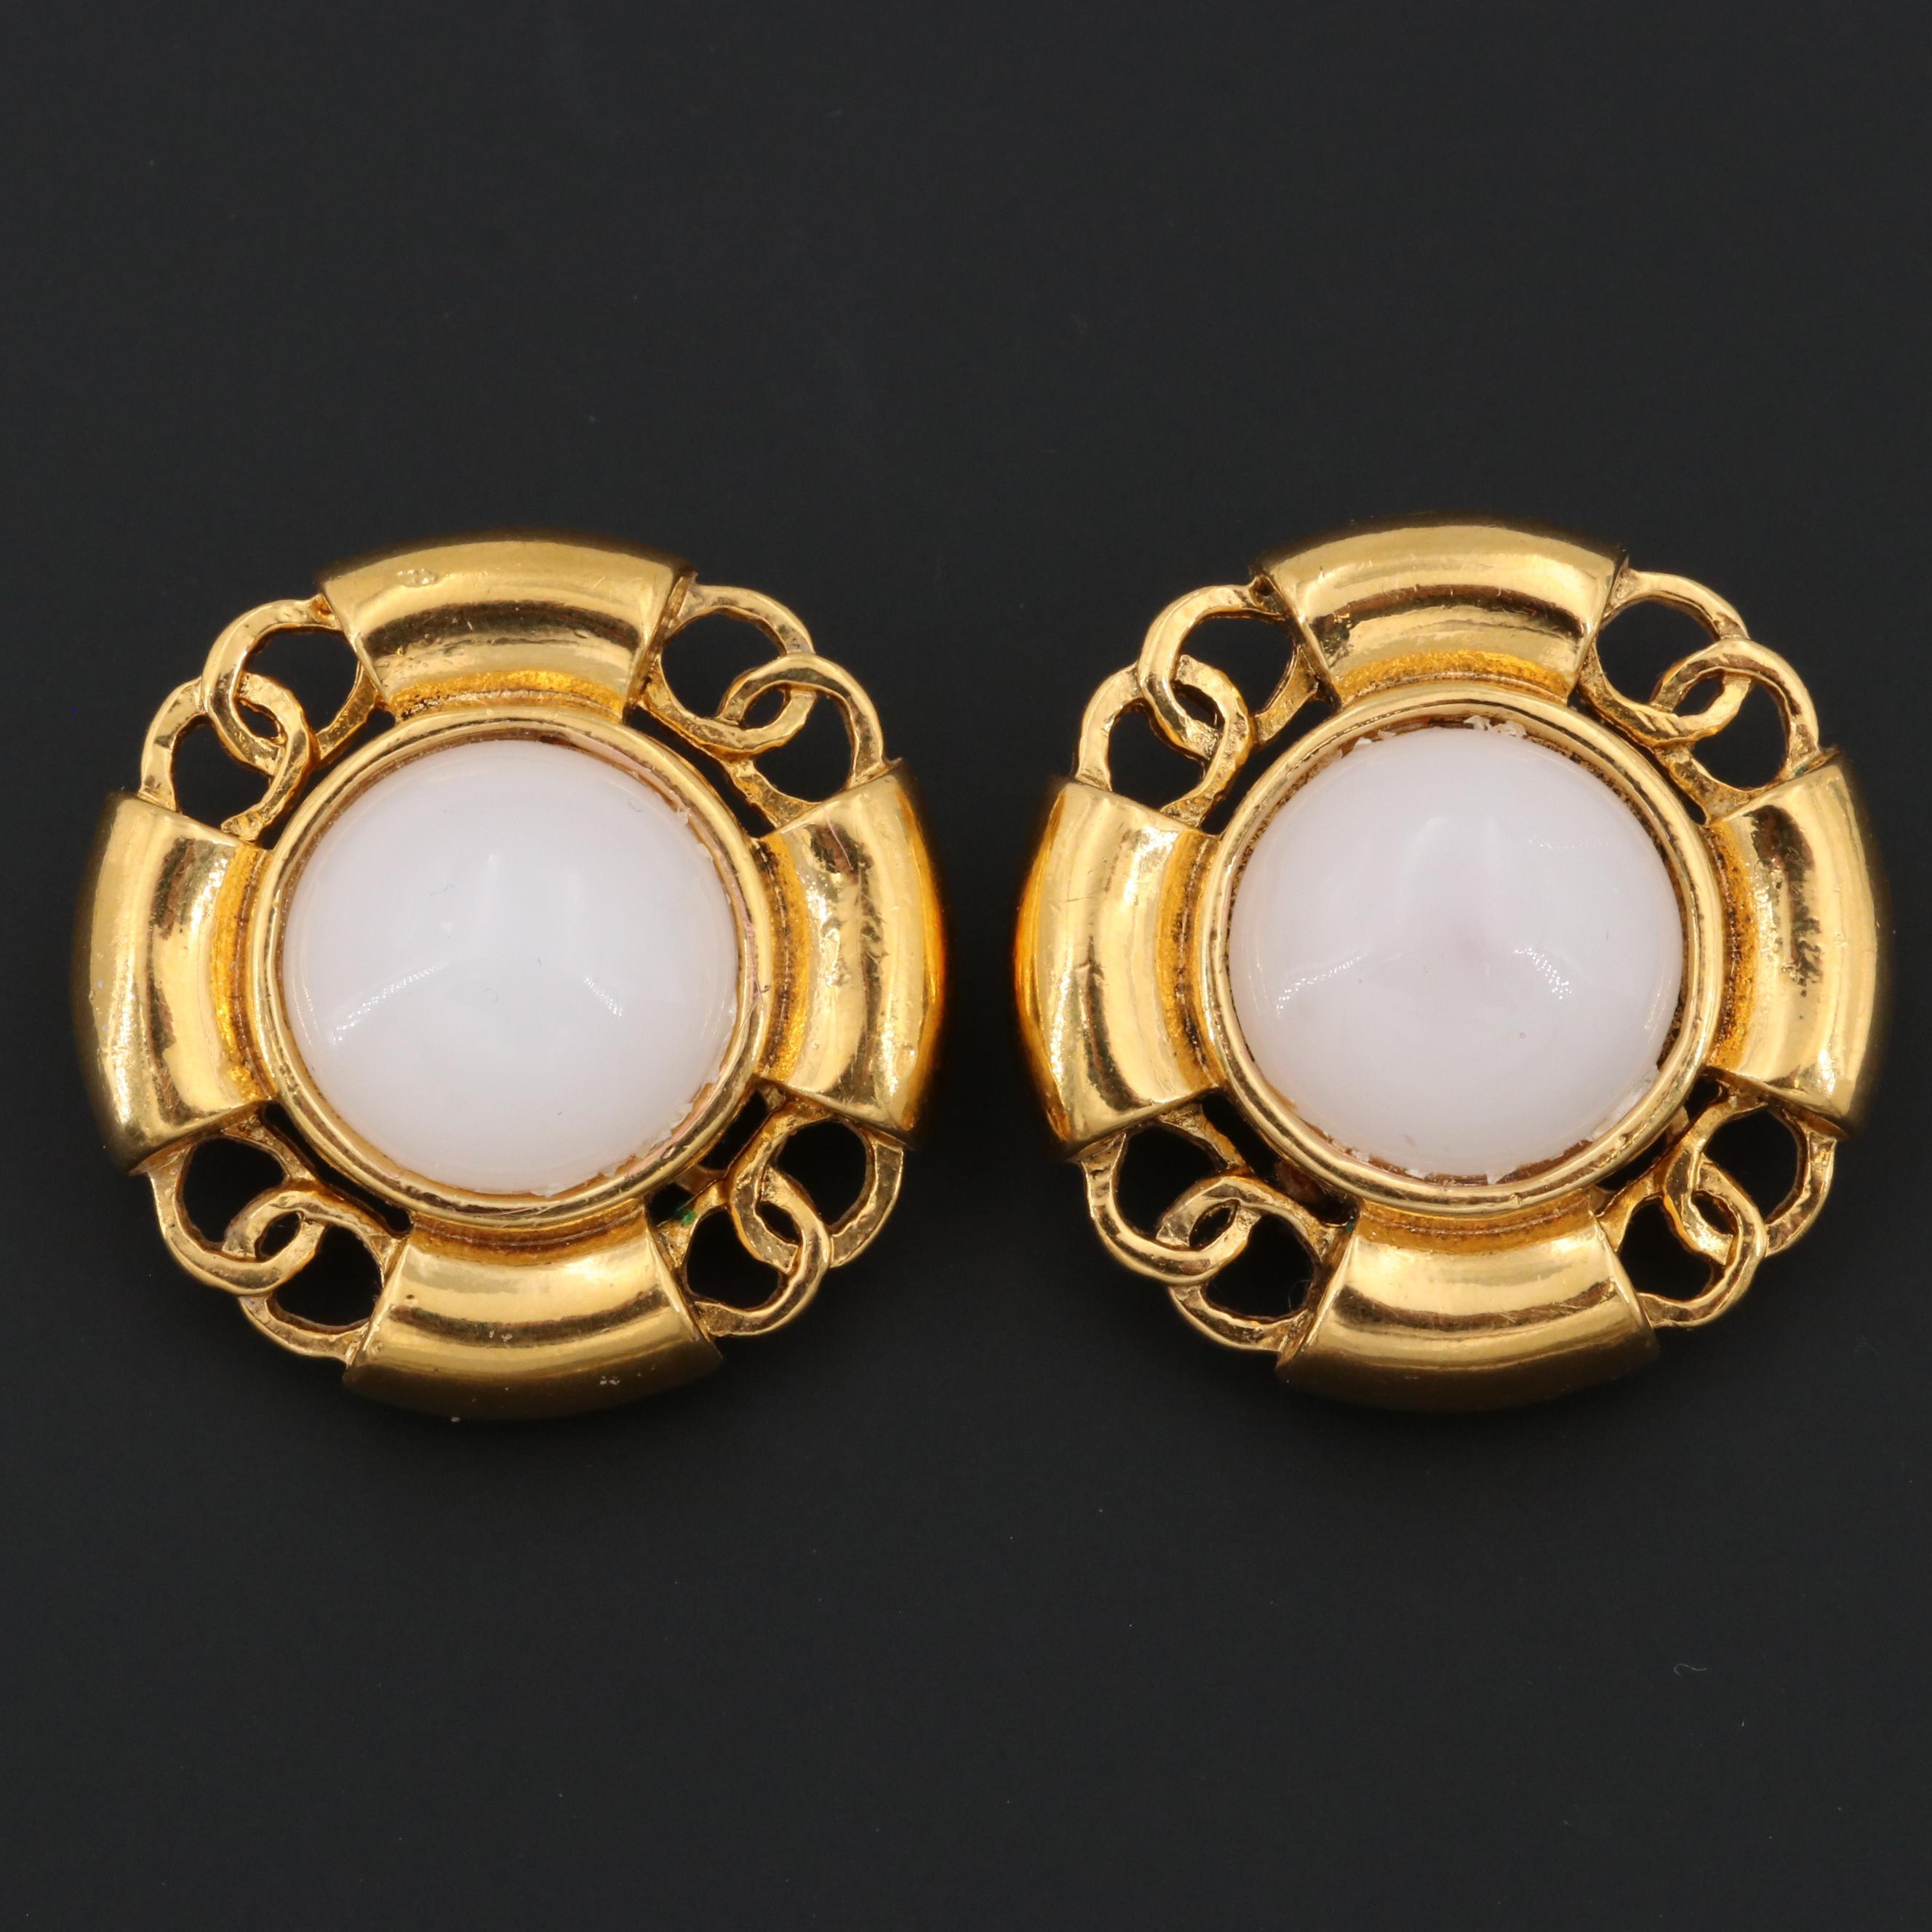 1993 Chanel Gold Tone Glass Clip-On Earrings